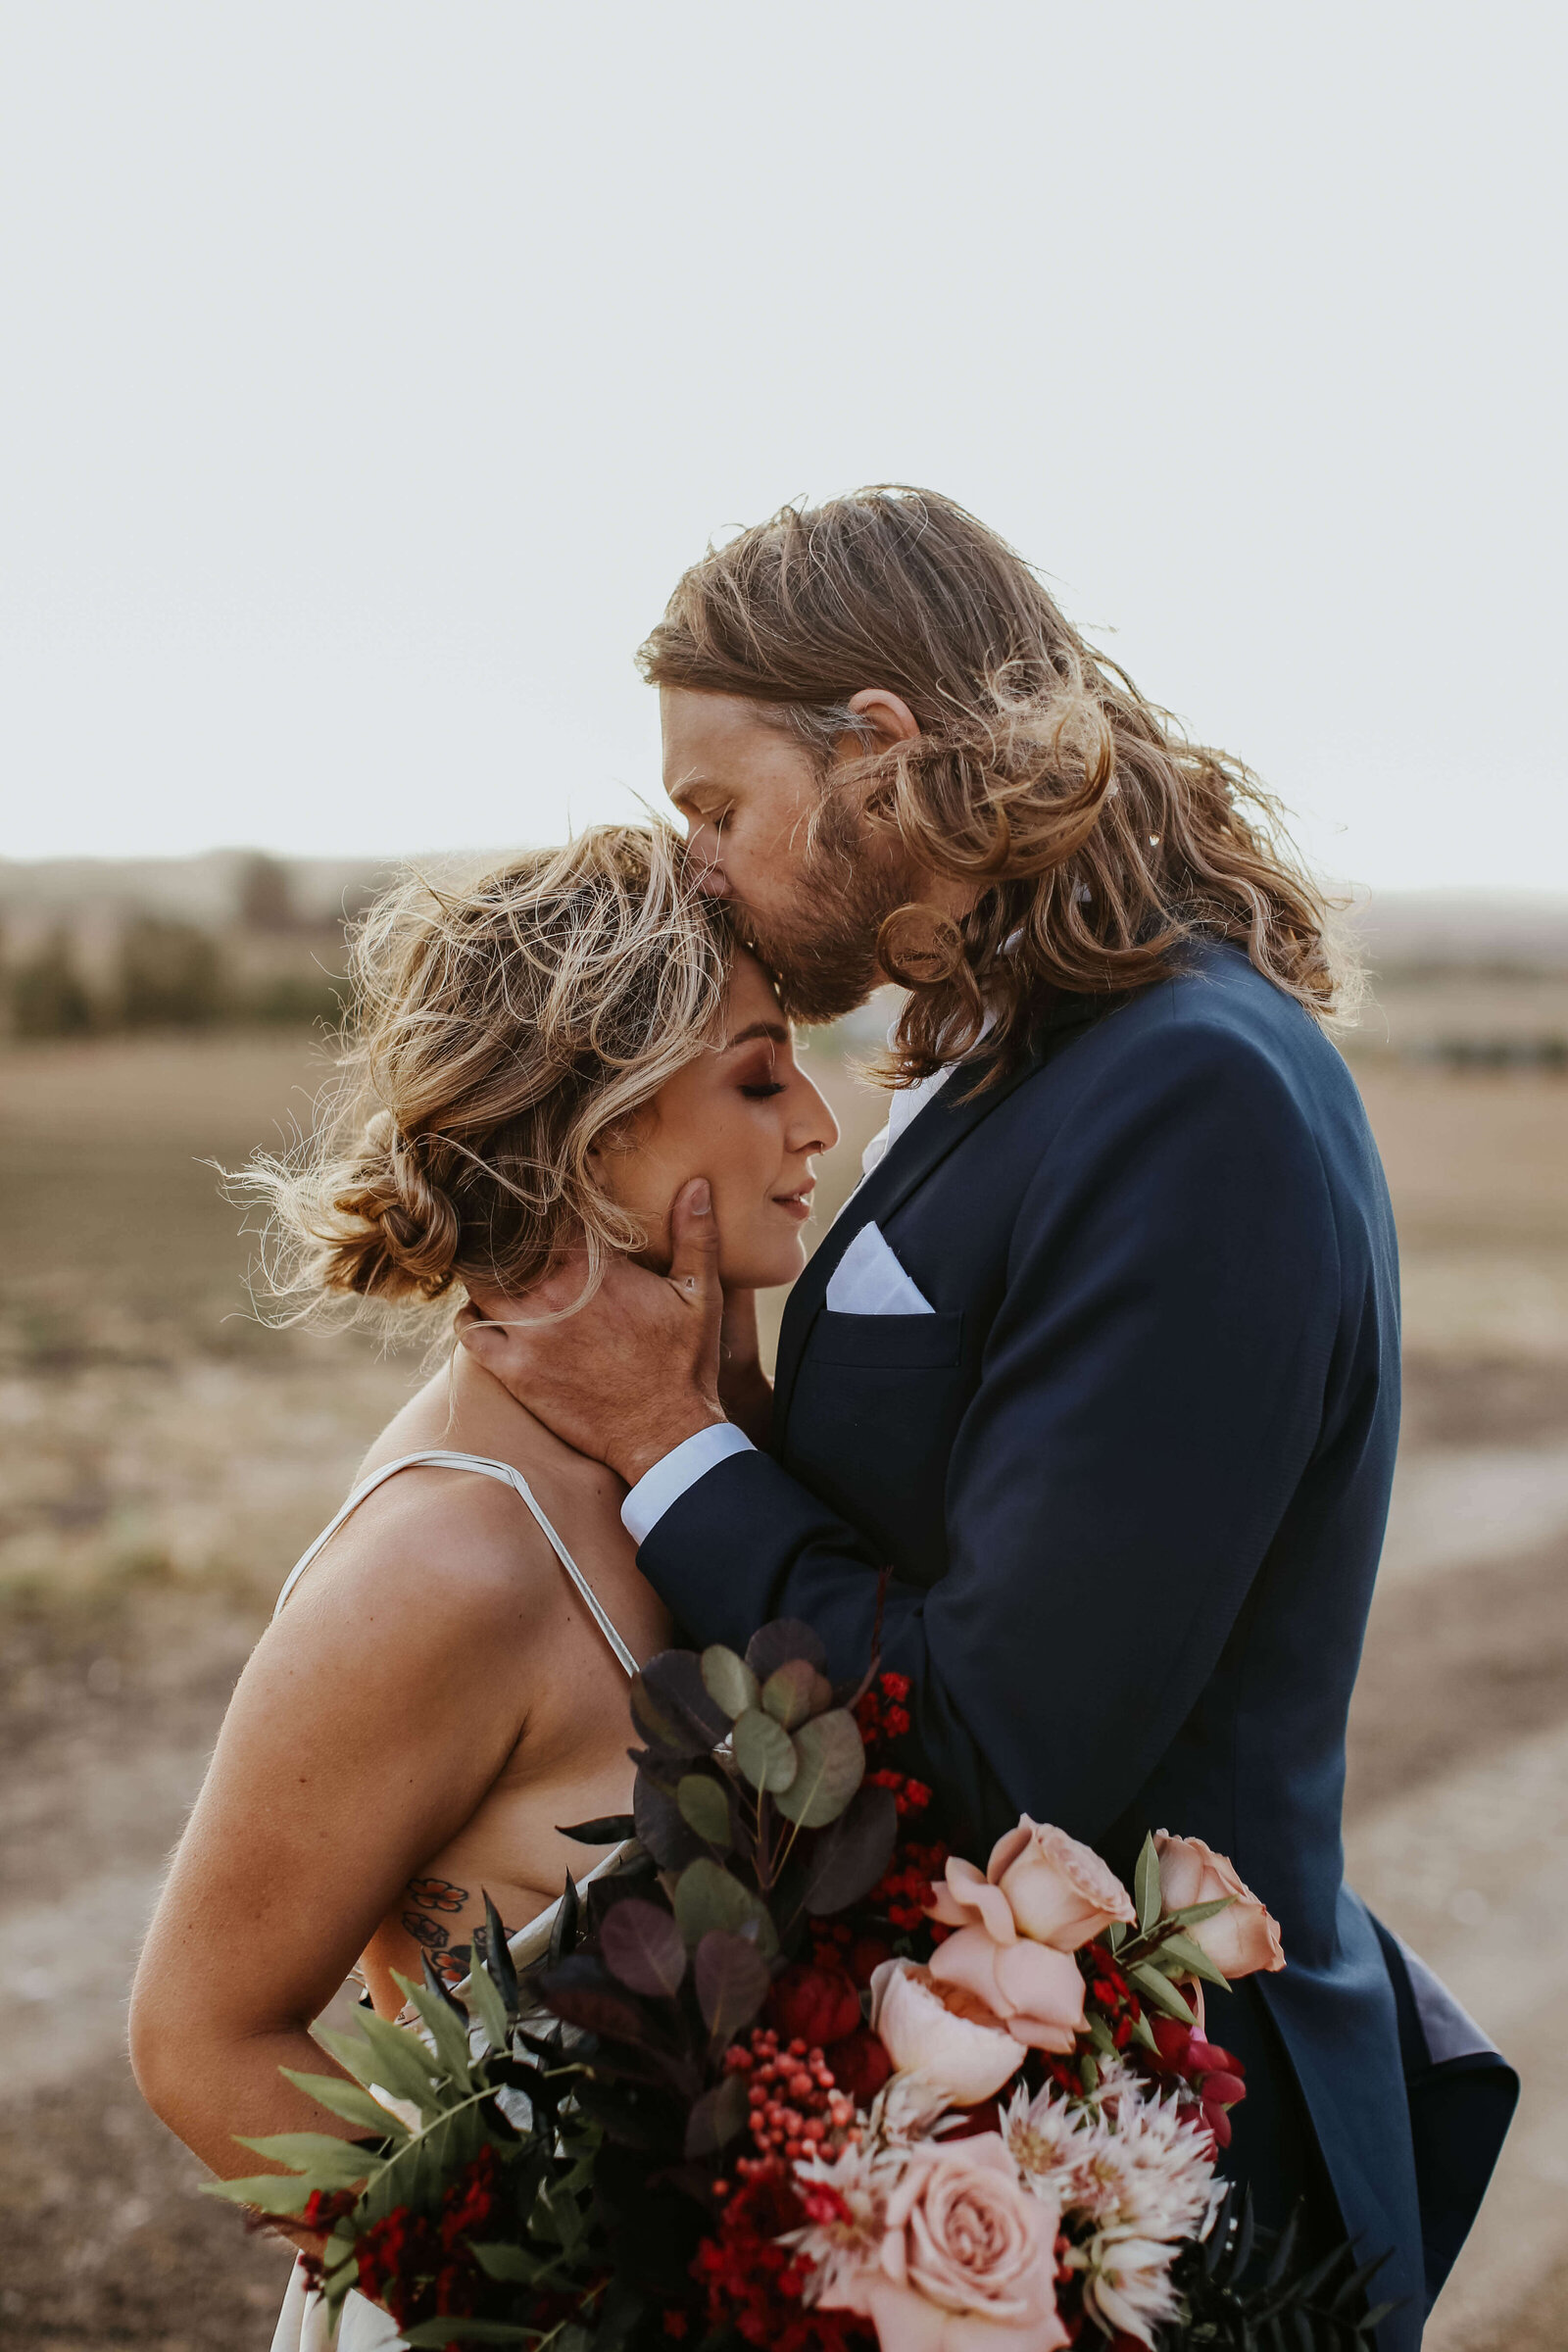 Penngrove-california-elopement-modern-bohemian-sonoma-county-elopement-events-by-gianna-somona-wedding-planner-10